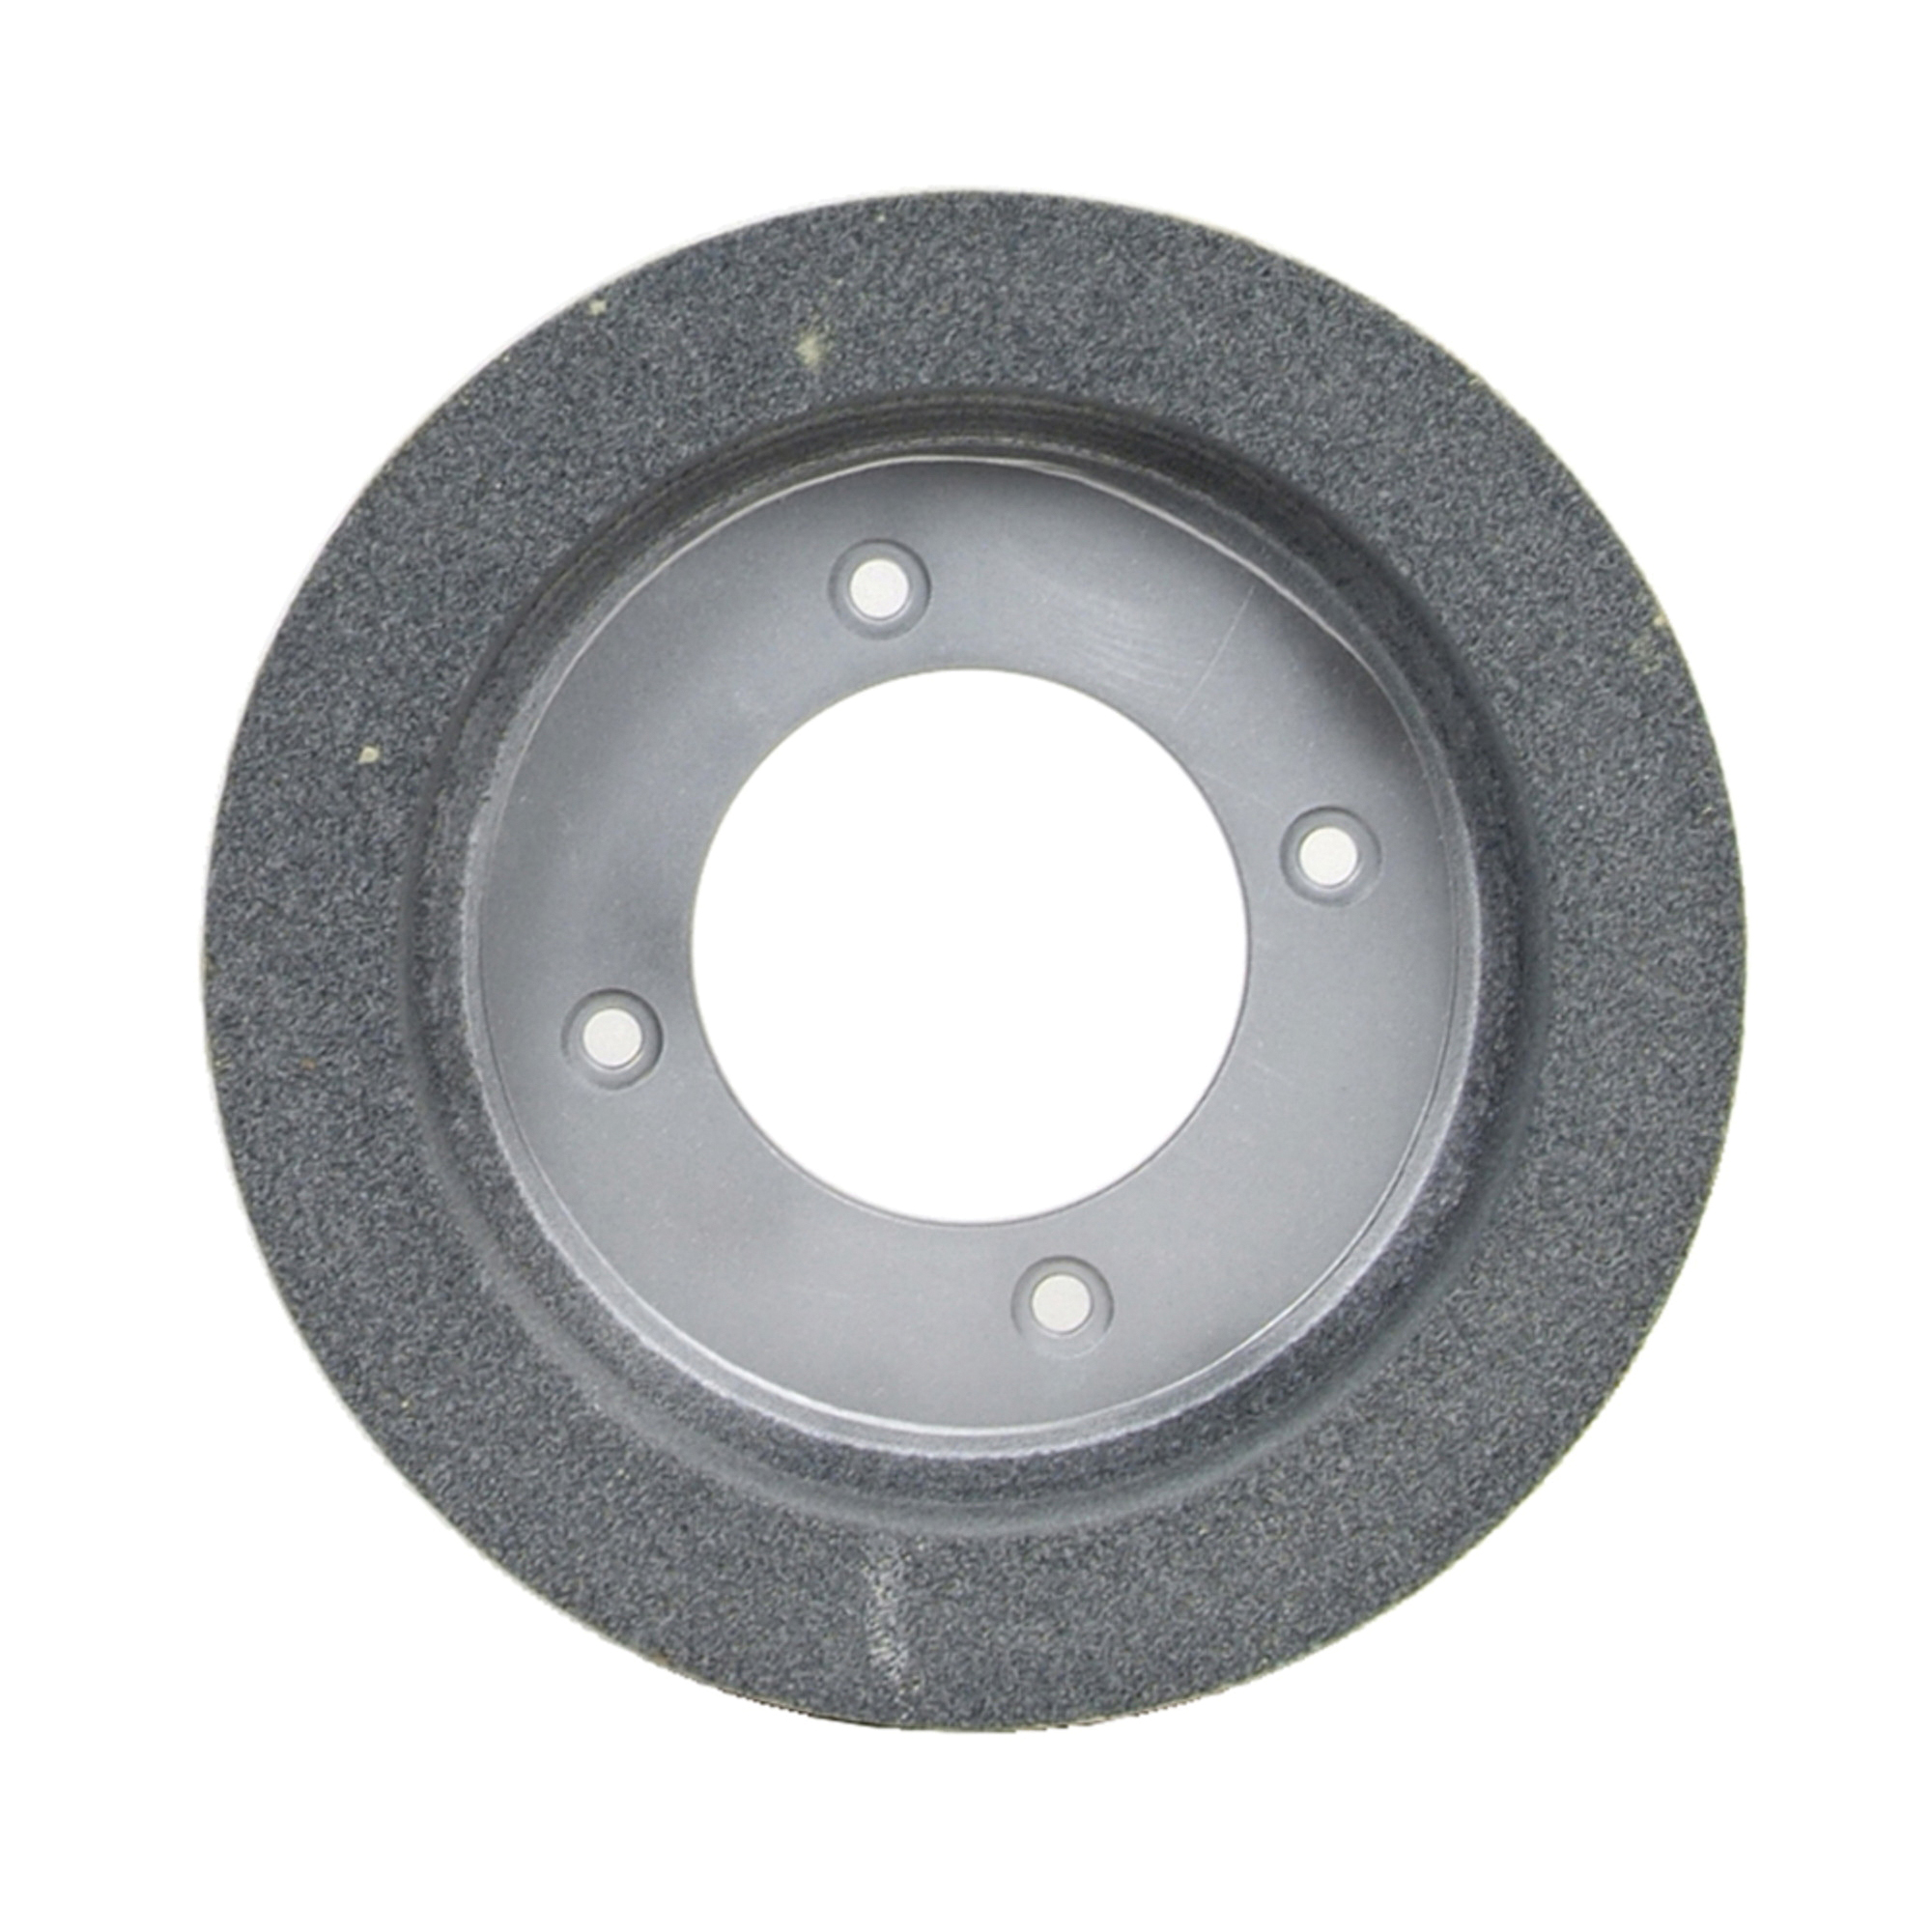 Norton® 66253161701 53A Cylinder Toolroom Wheel, 10 in Dia x 2 in THK, 7-1/2 in Center Hole, 60 Grit, Aluminum Oxide Abrasive